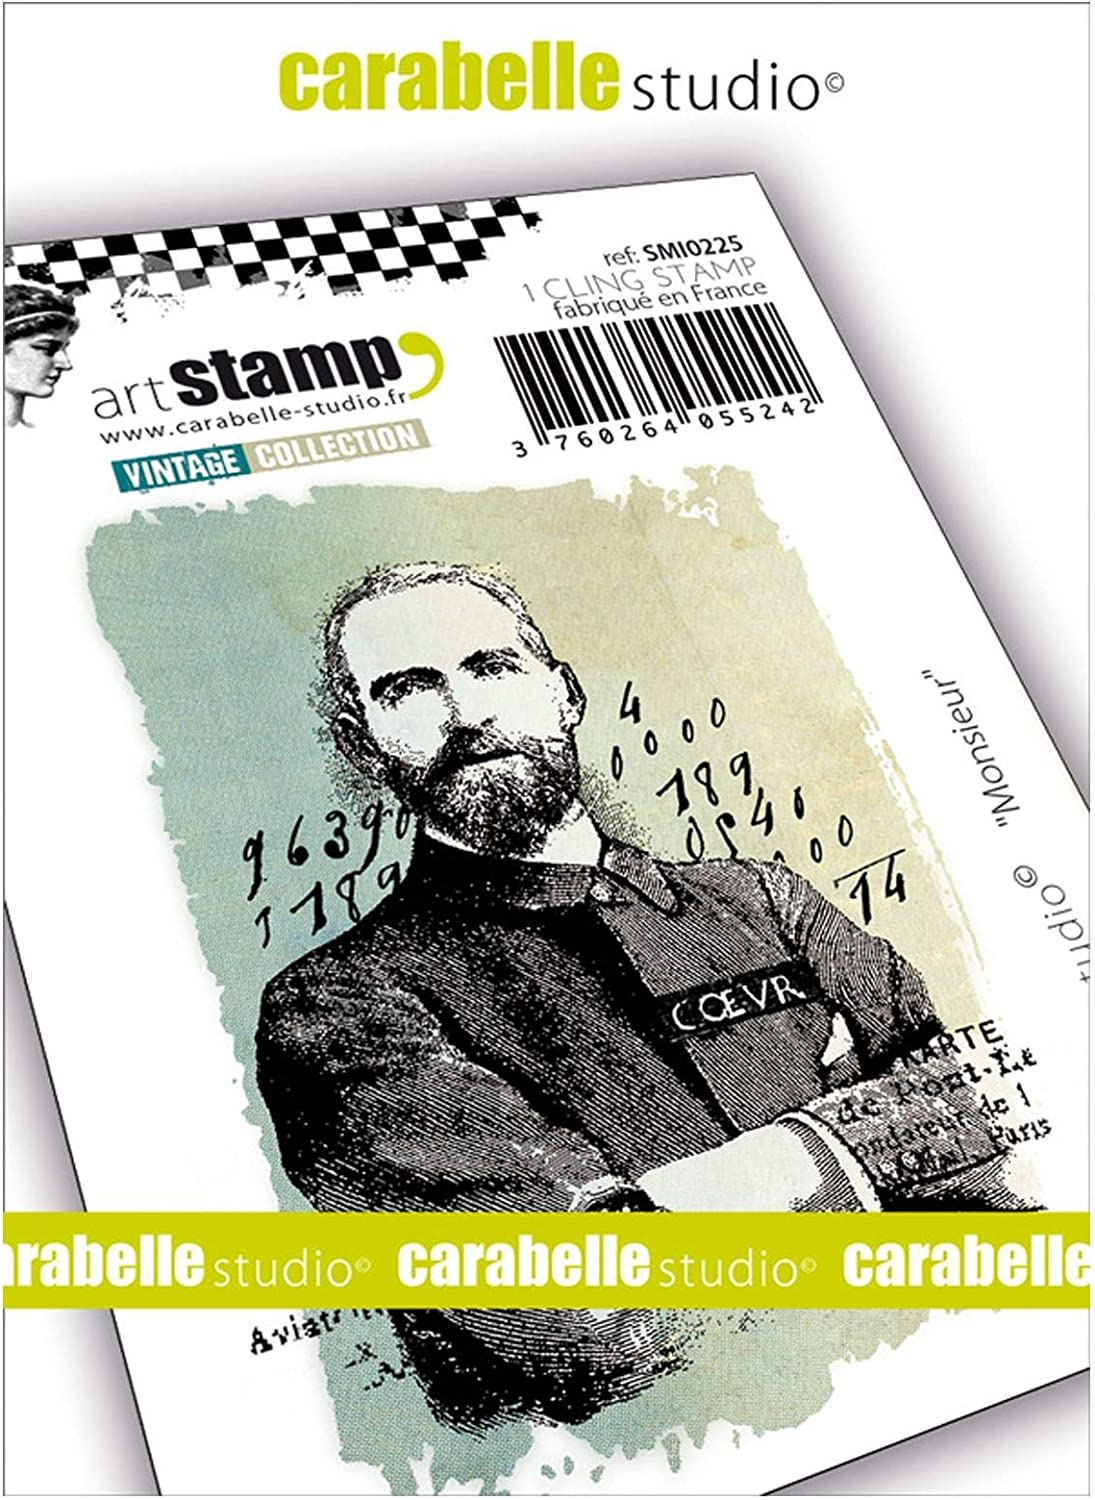 One Size Multicolored CARABELLE STUDIO Cling Stamp Gentleman